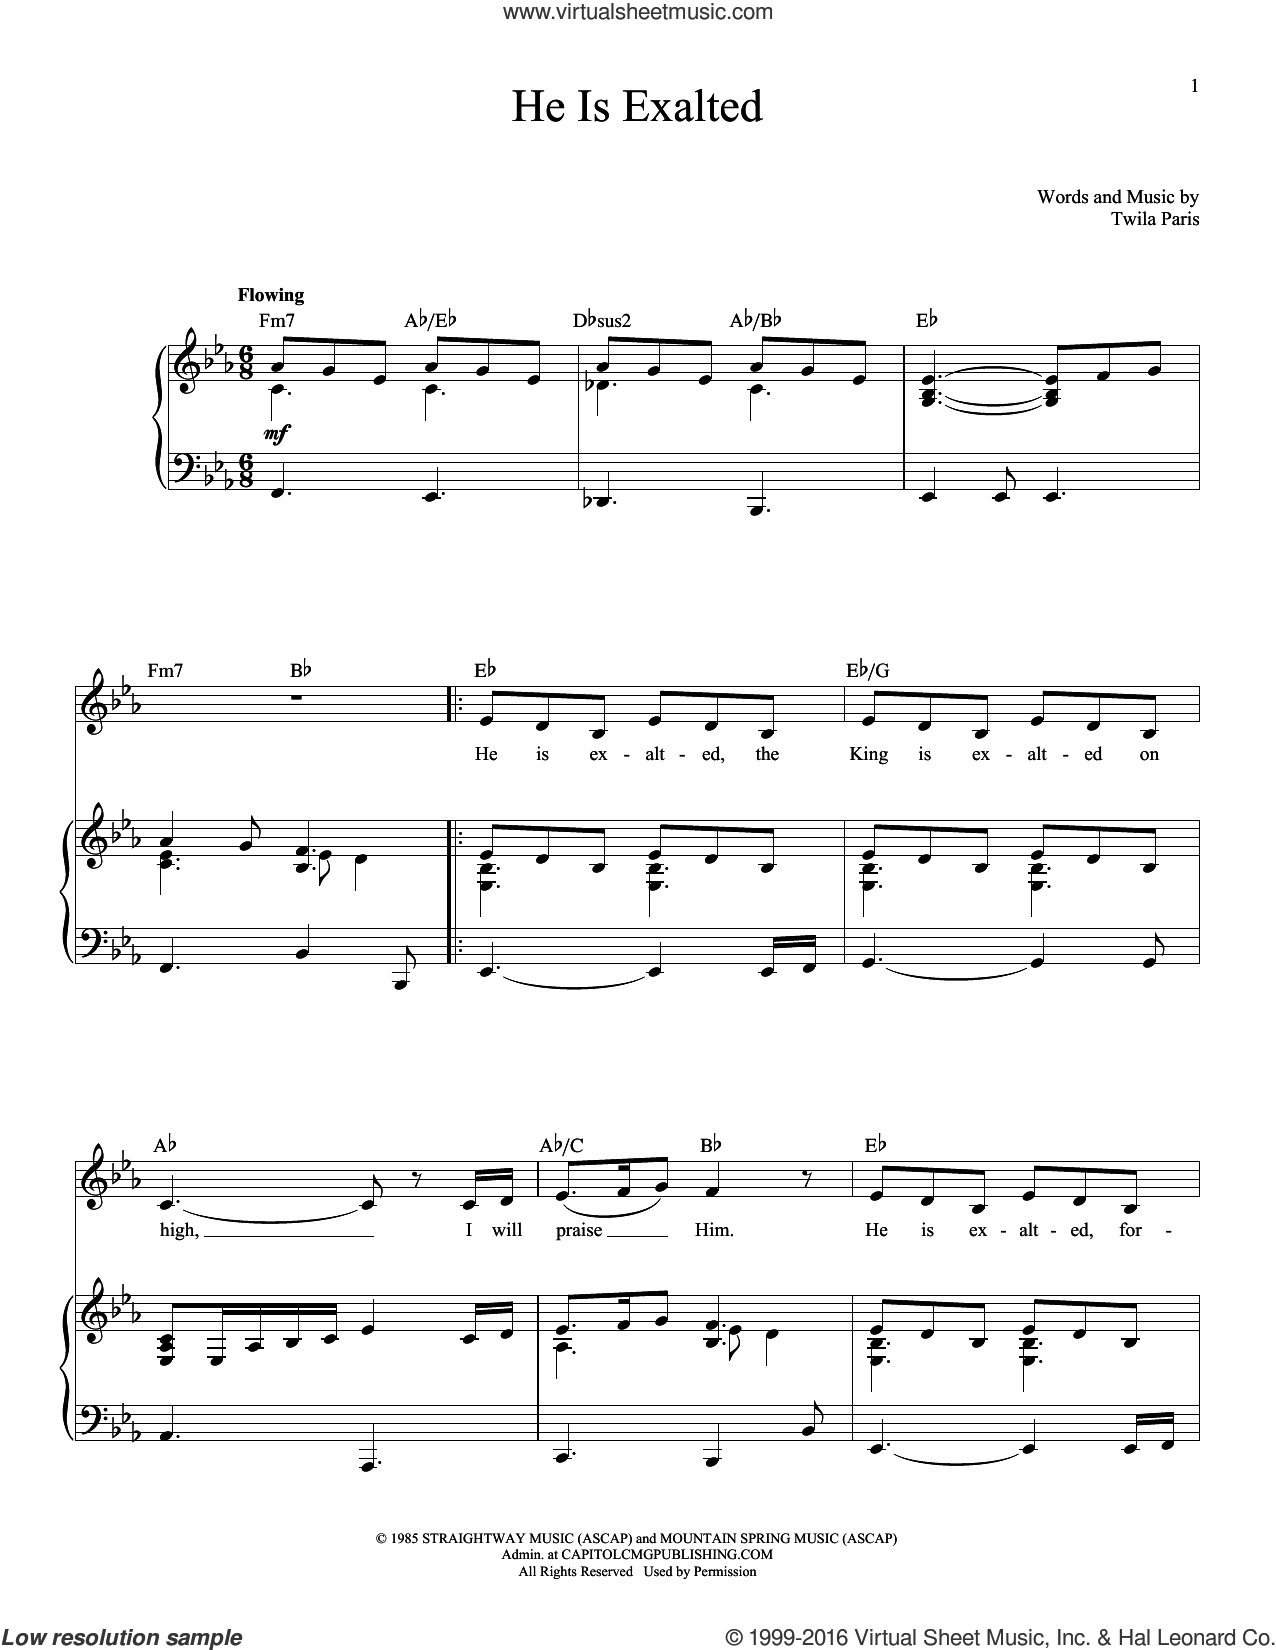 He Is Exalted sheet music for voice and piano by Twila Paris, intermediate skill level